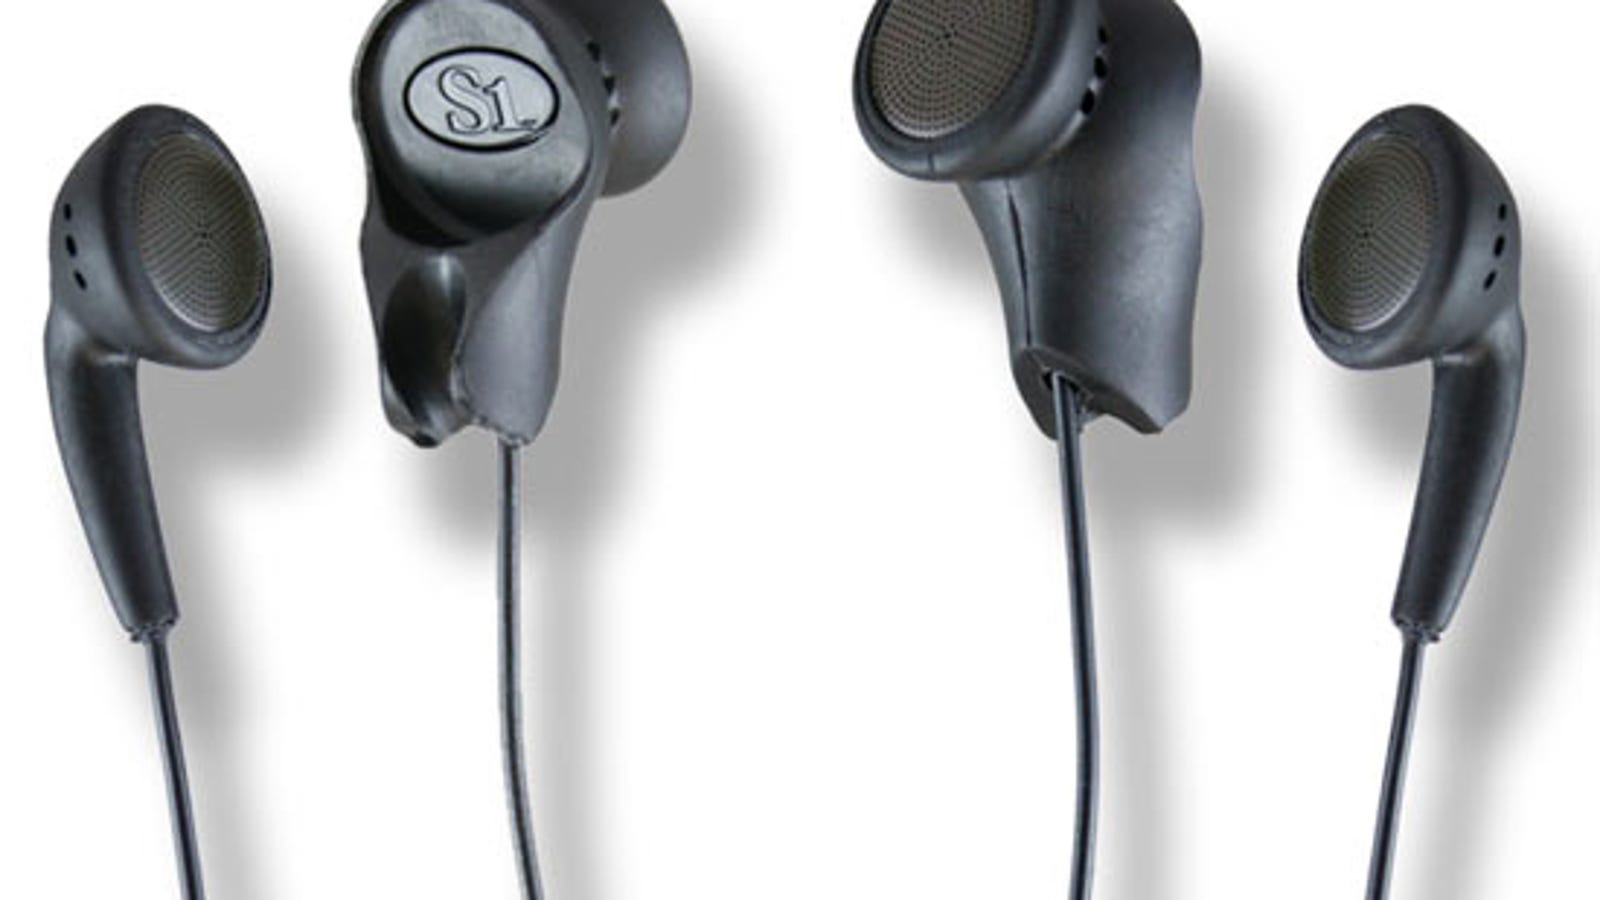 jvc marshmallow earbuds hafr37 - BudBud Earbuds Let You Share Your Music With Your Buds